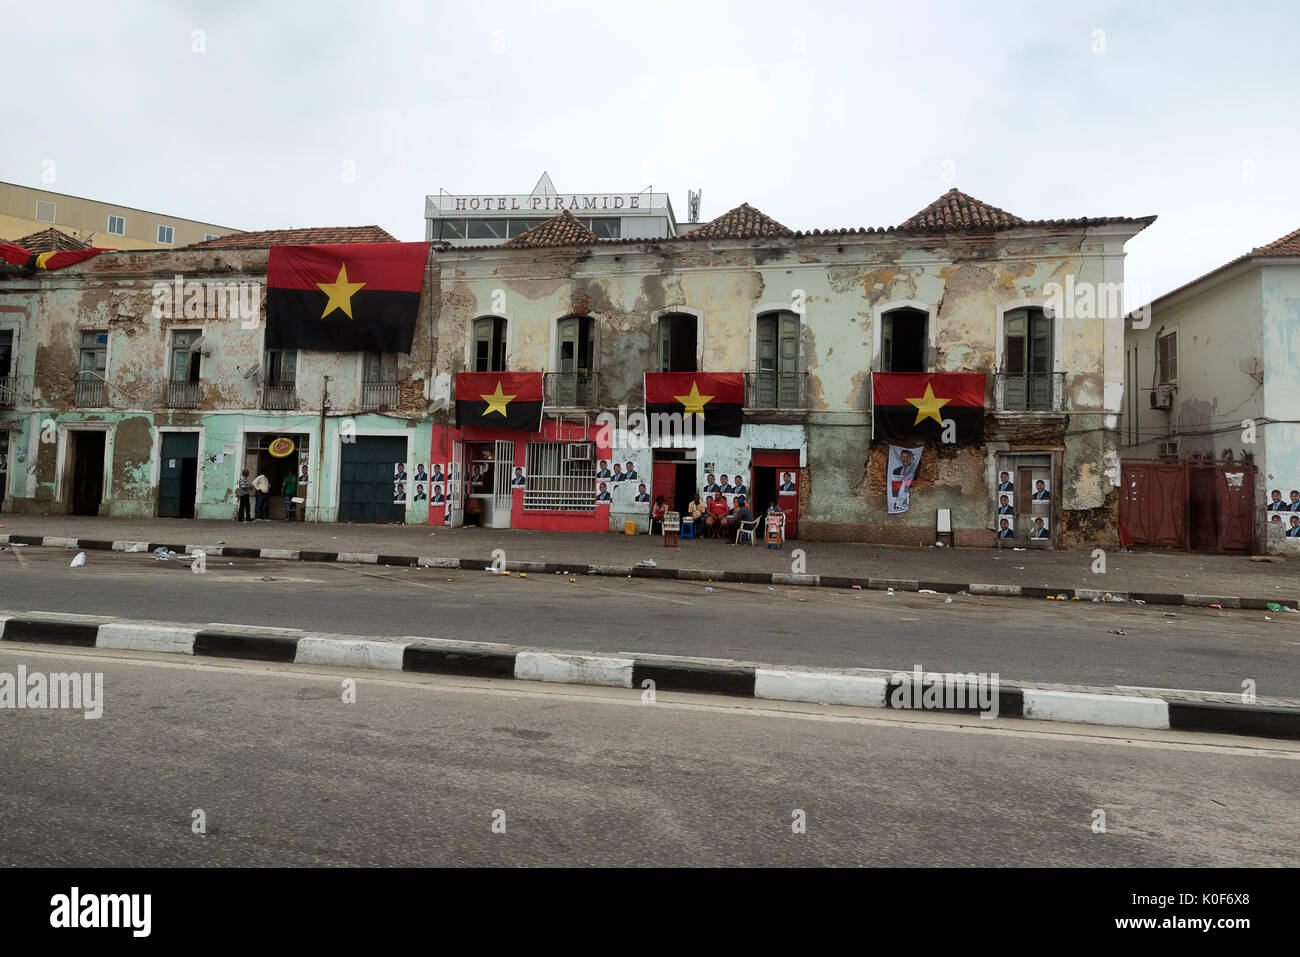 Luanda, Angola. 23rd August, 2017. Residents sit outside on election day in Angola underneath of the flags of the ruling People's Movement for the Liberation of Angola (MPLA) party and posters displaying presidential canidate Joao Lourenco. Credit: Will Reynolds Photography/Alamy Live News - Stock Image